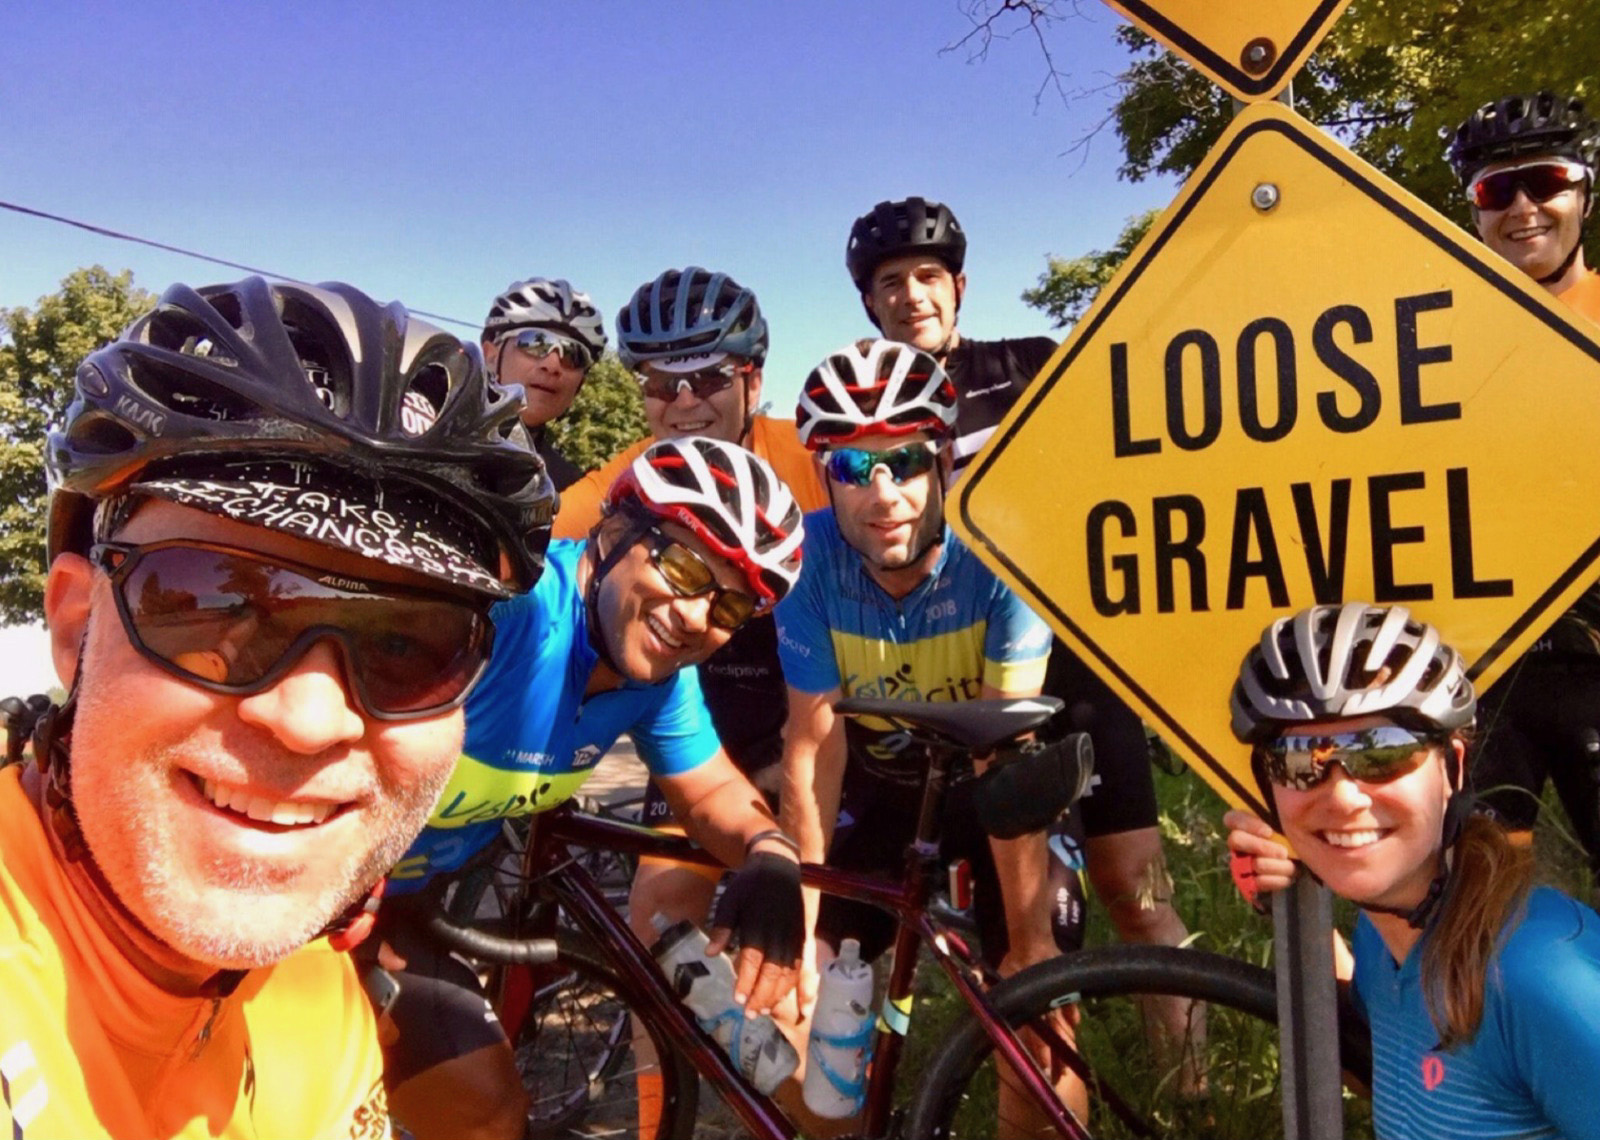 About Gravelocity Cycling